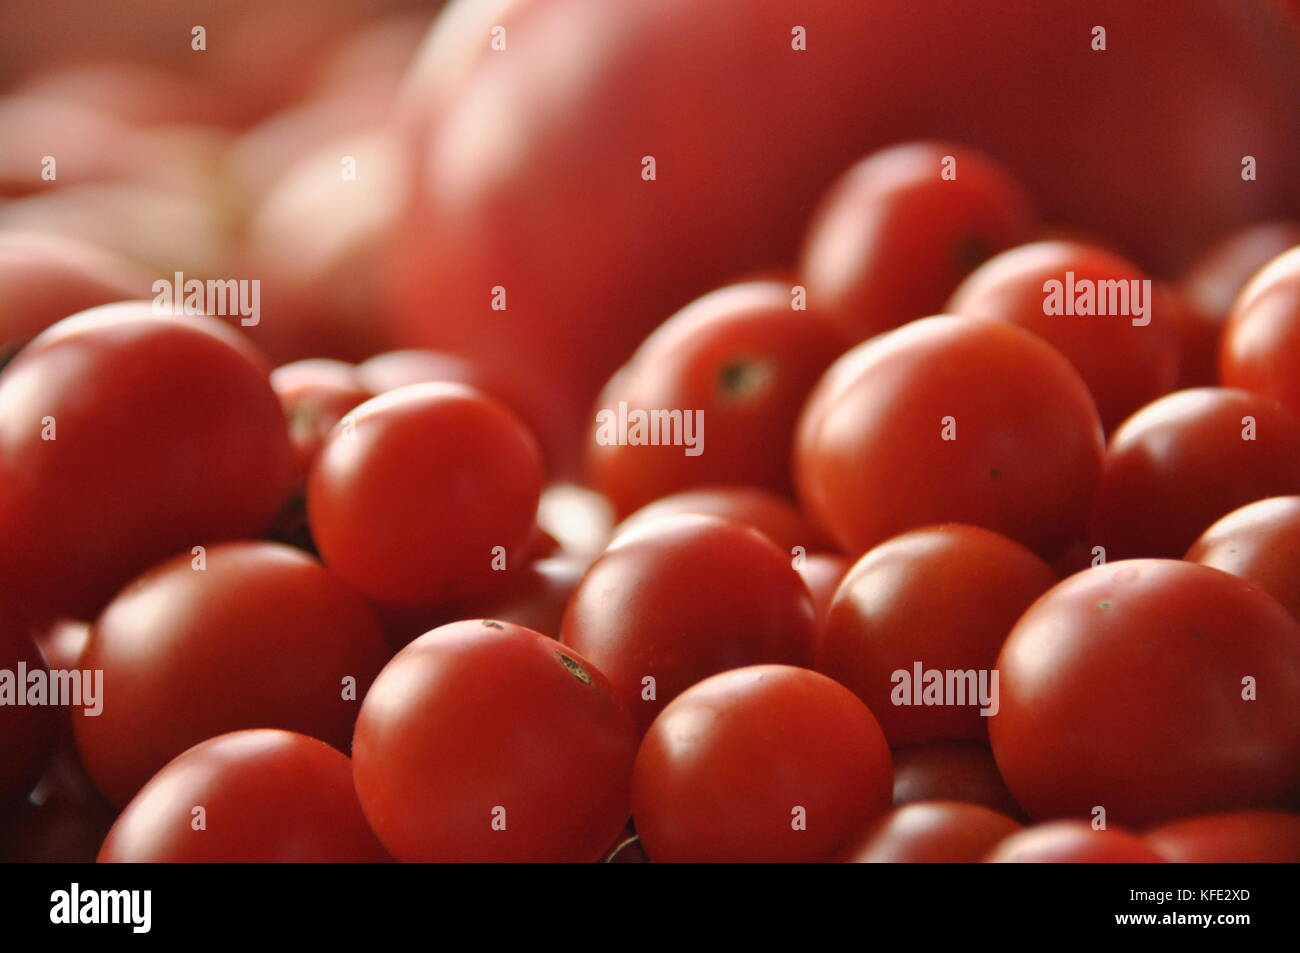 Picking tomatoes. Tomato and raspberry cocktail. Vegetables. - Stock Image